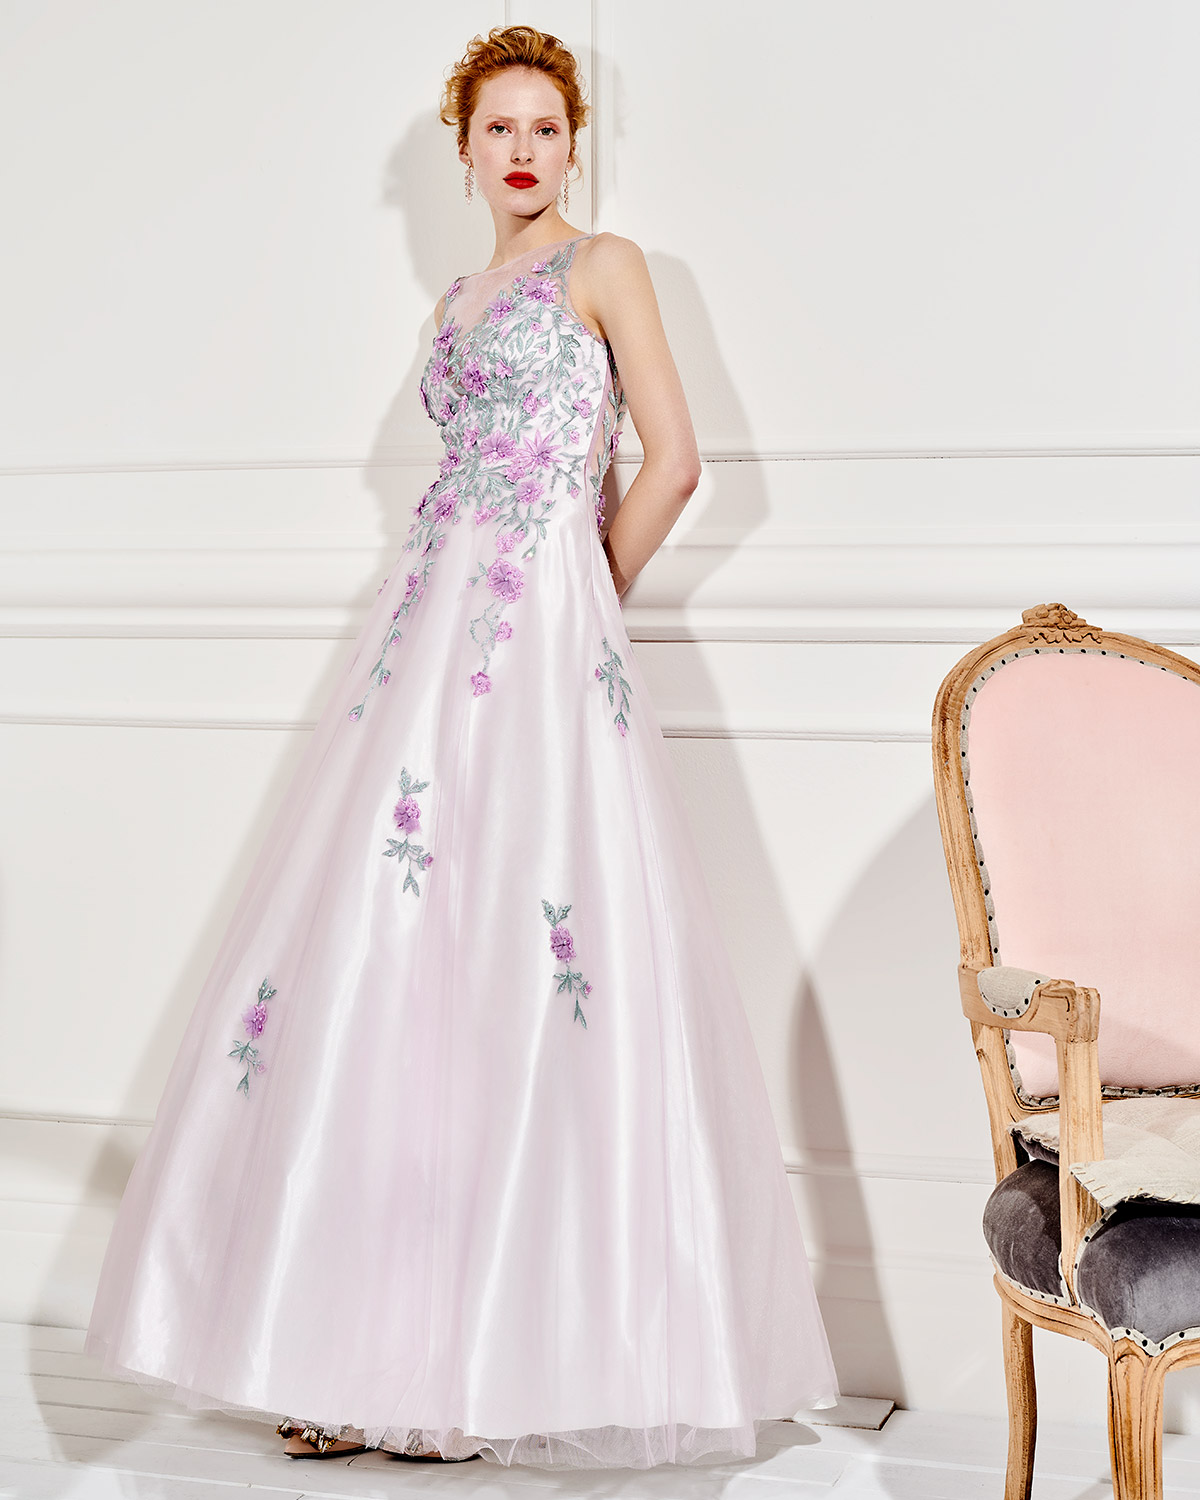 Long evening tulle dress with beading flowers